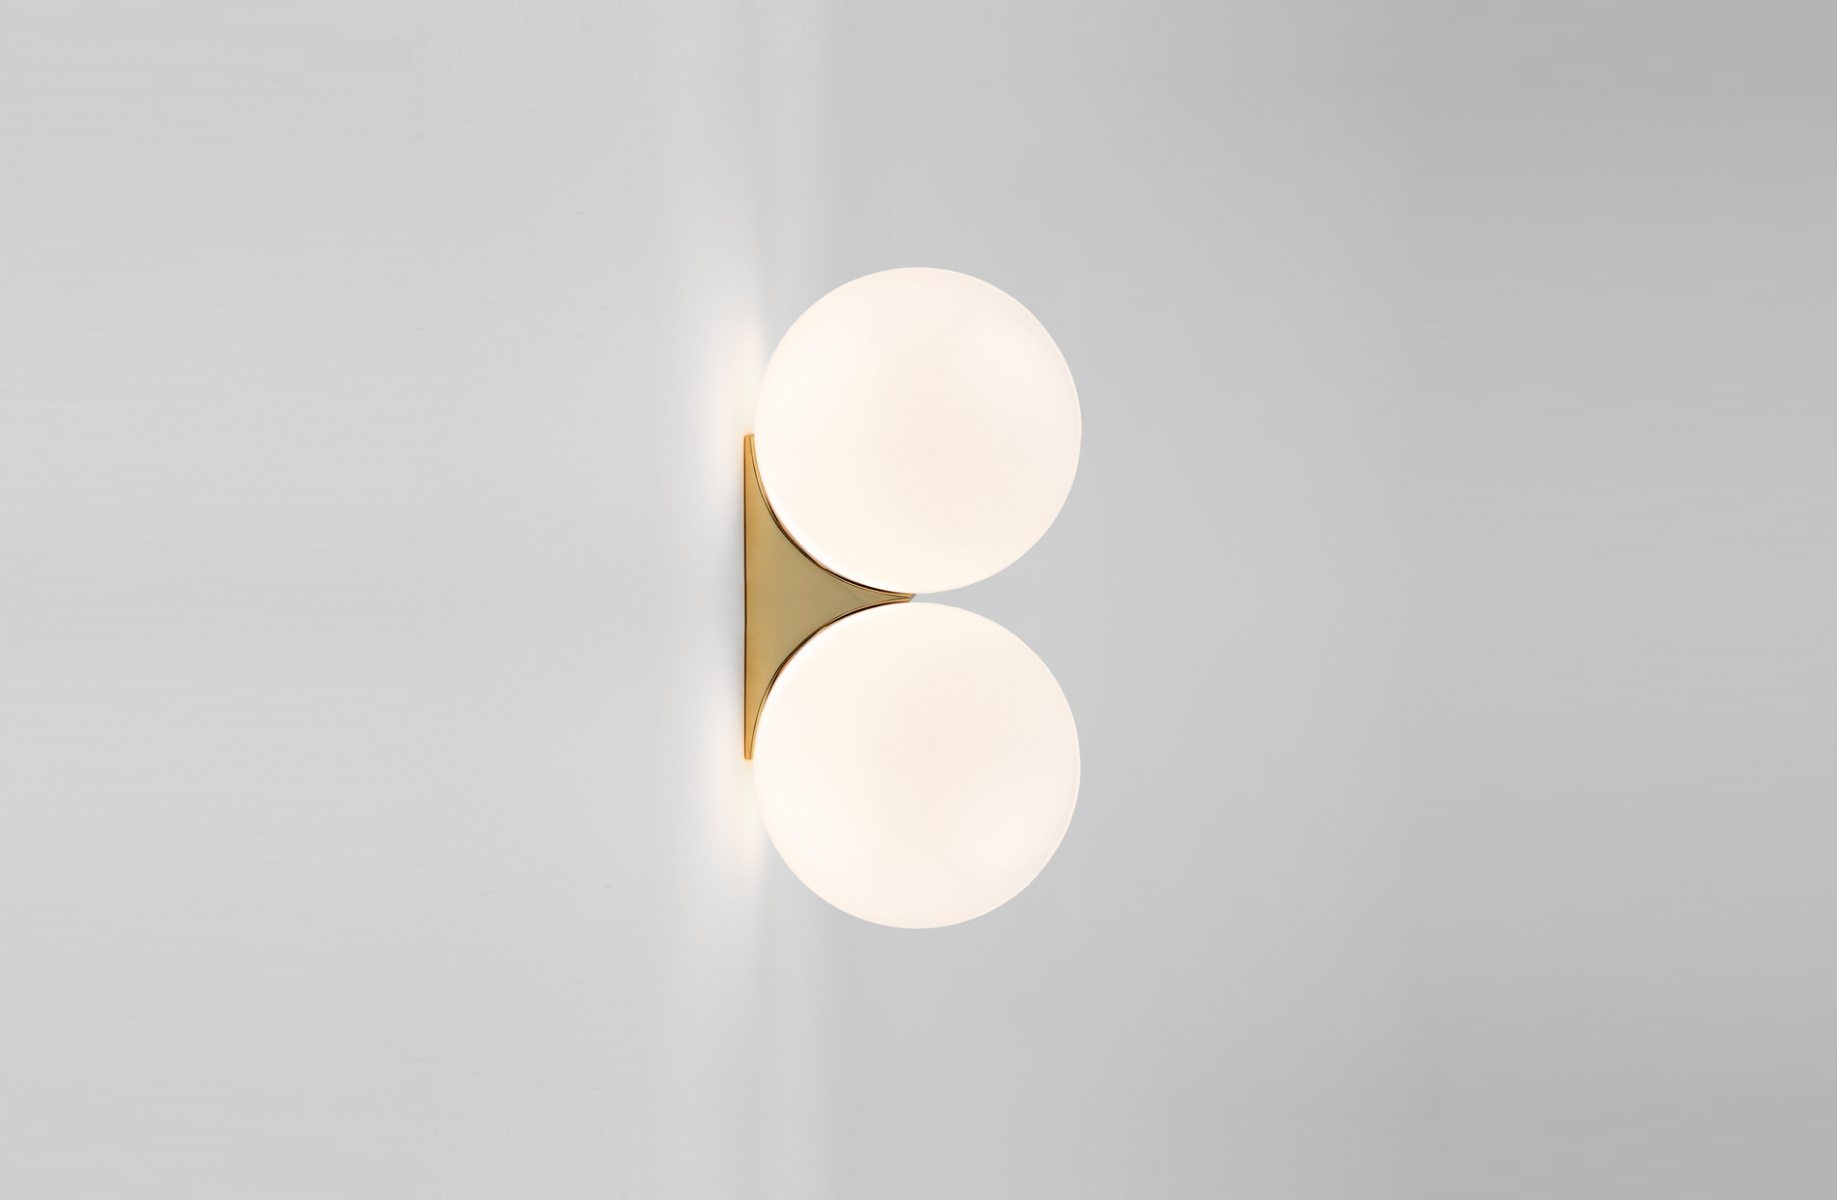 Wall light brass architecturale double sconce white and brass